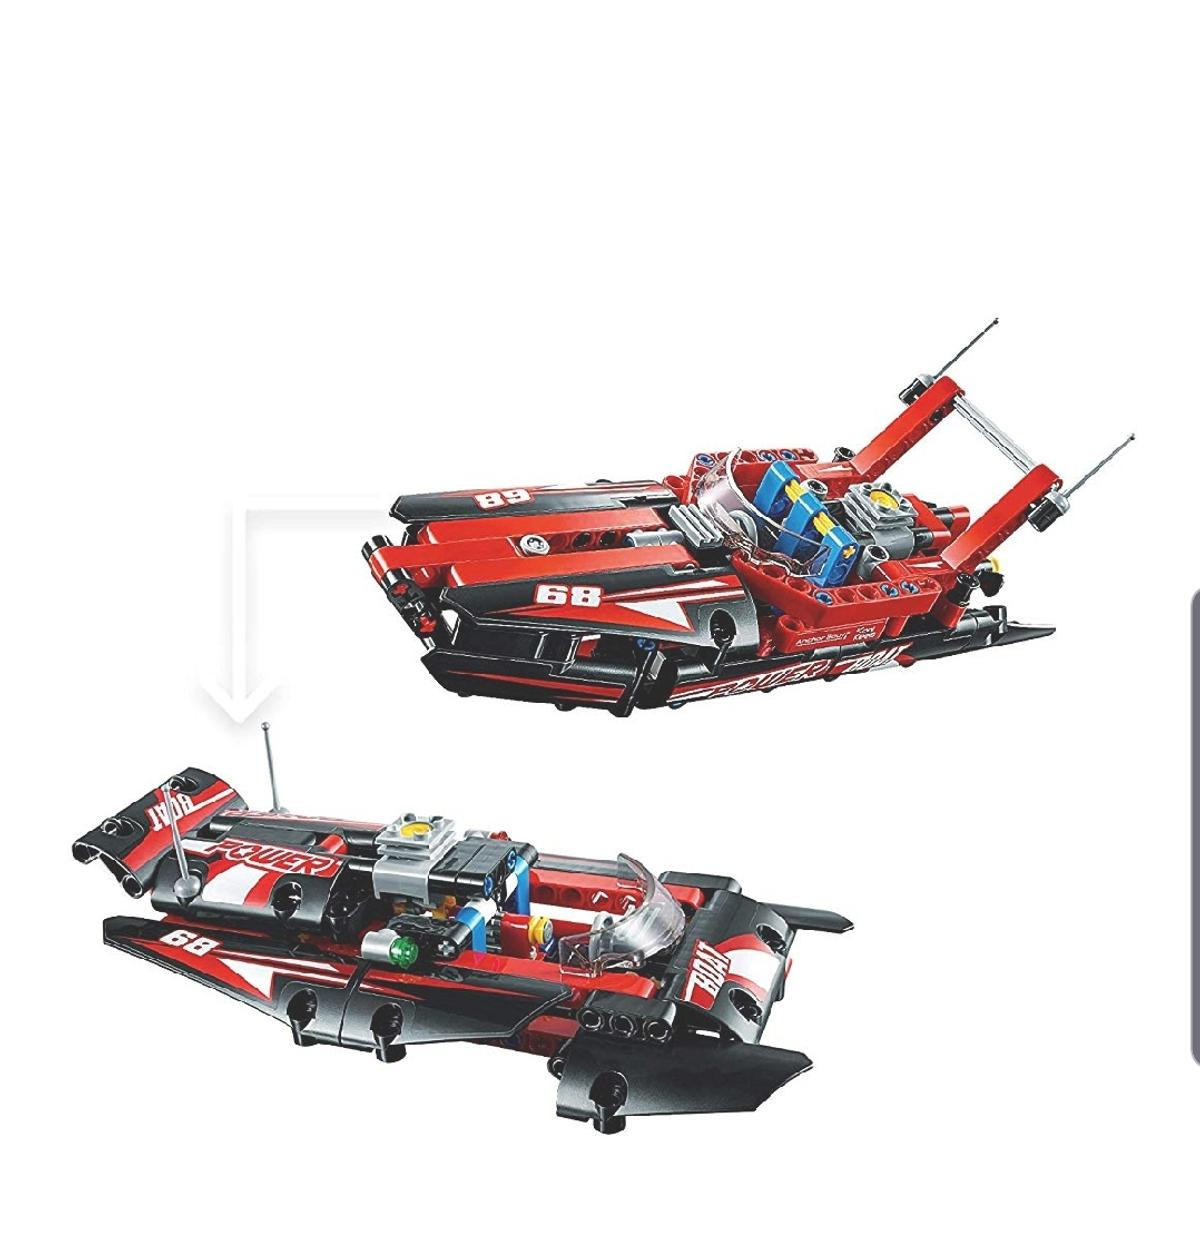 Lego 42089 Technic Rennboot In 6700 Bludenz For 1500 For Sale Shpock